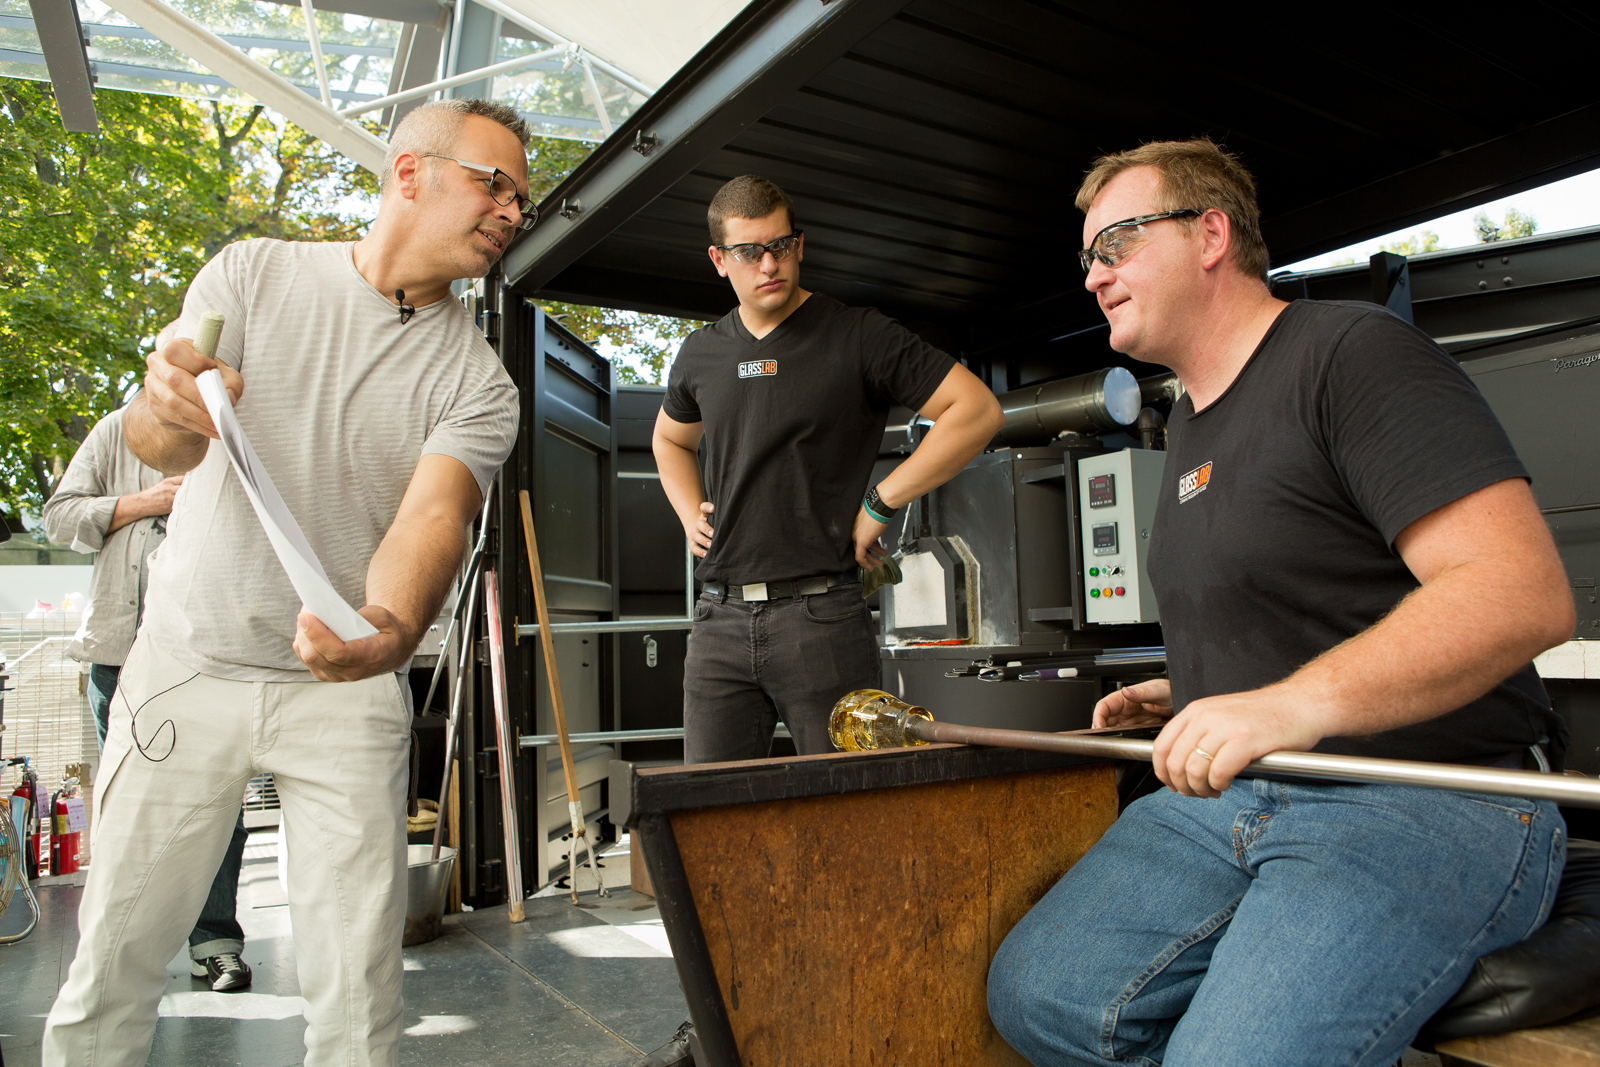 Harry Allen at GlassLab in Corning, August 2012